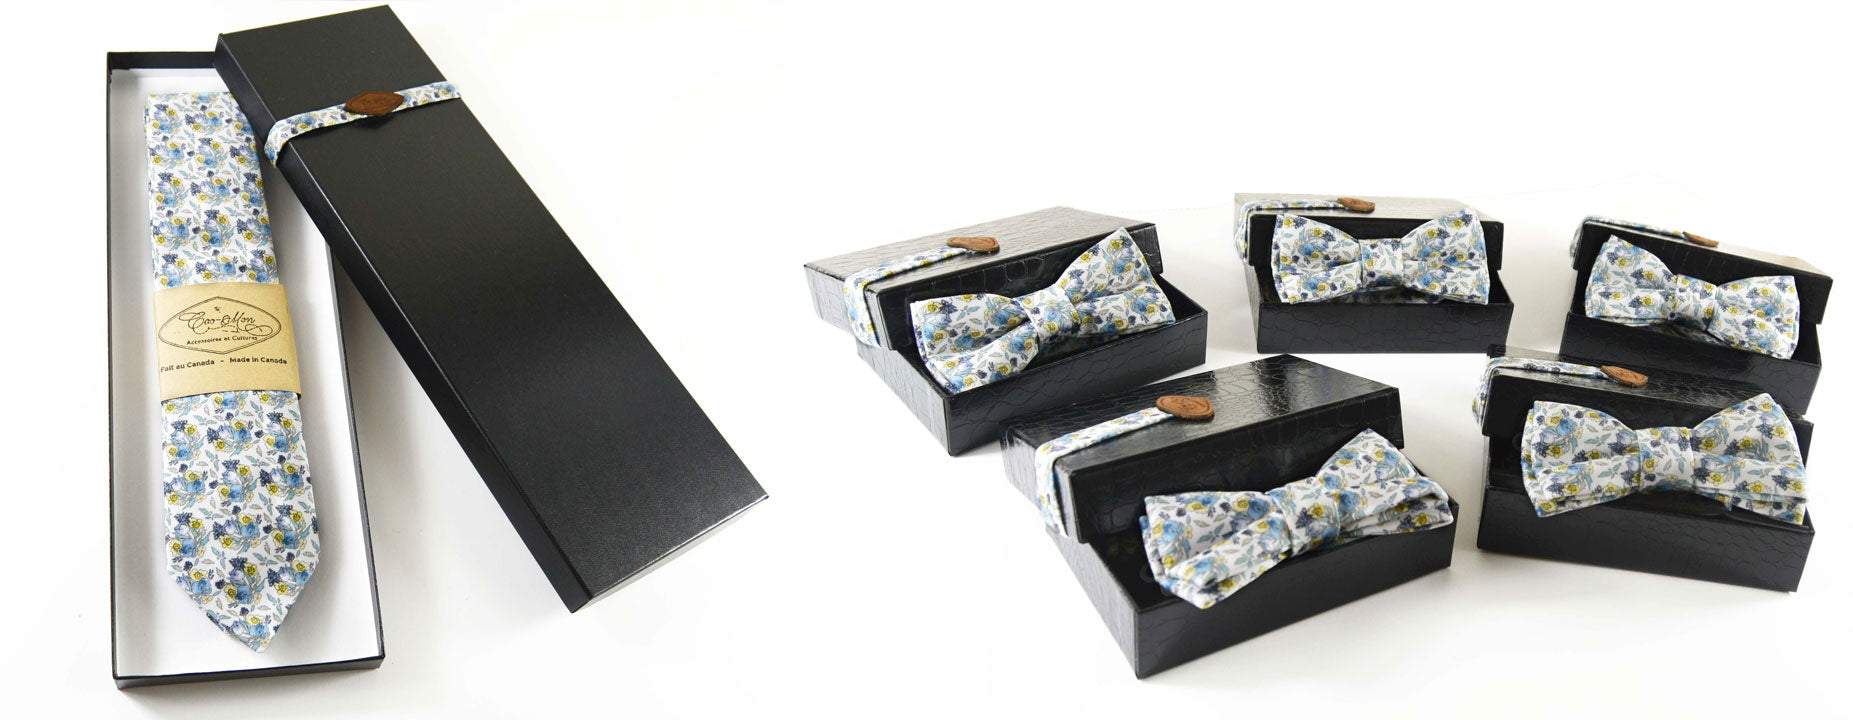 The groom and his groomsmen highlighted through custom wedding accessories from Coo-Mon